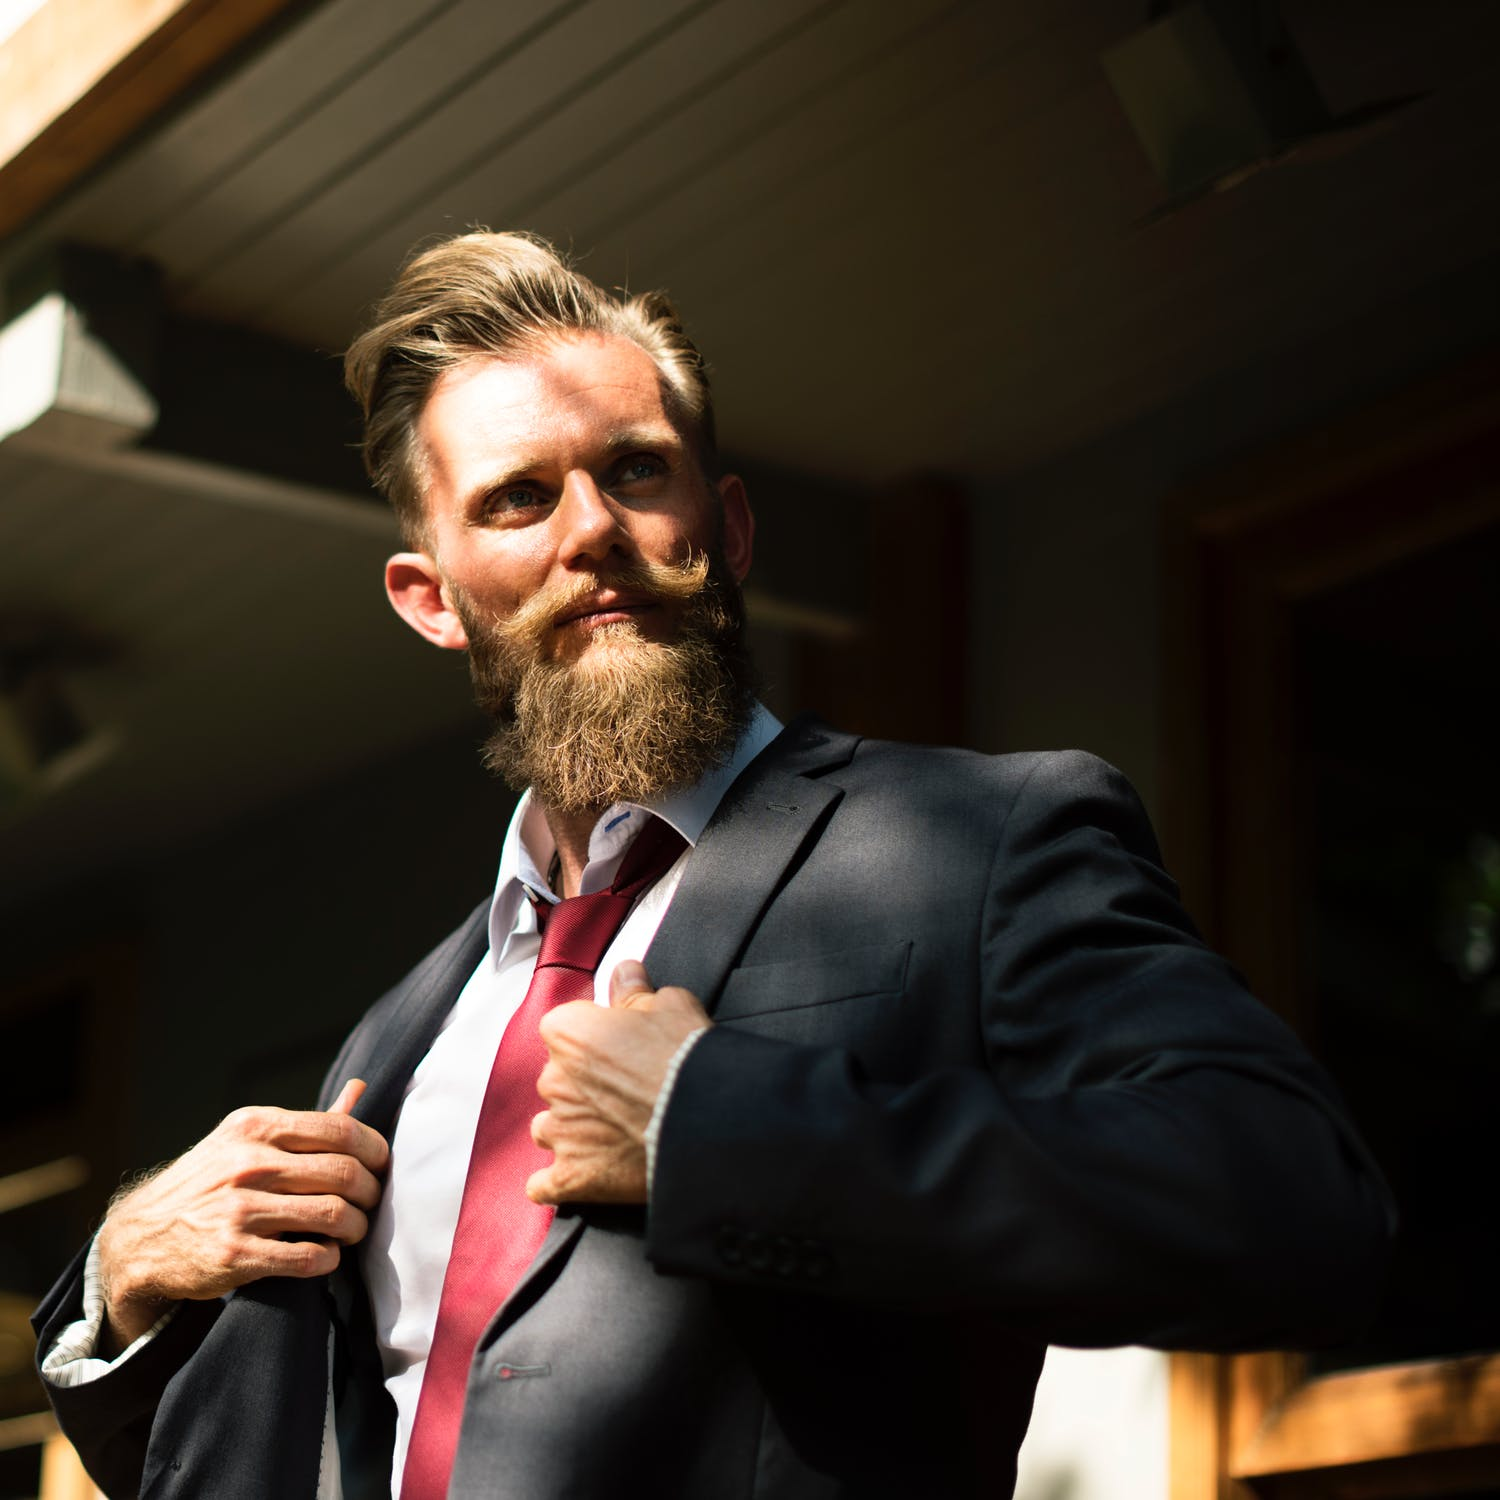 How To Grow And Maintain A Corporate Beard